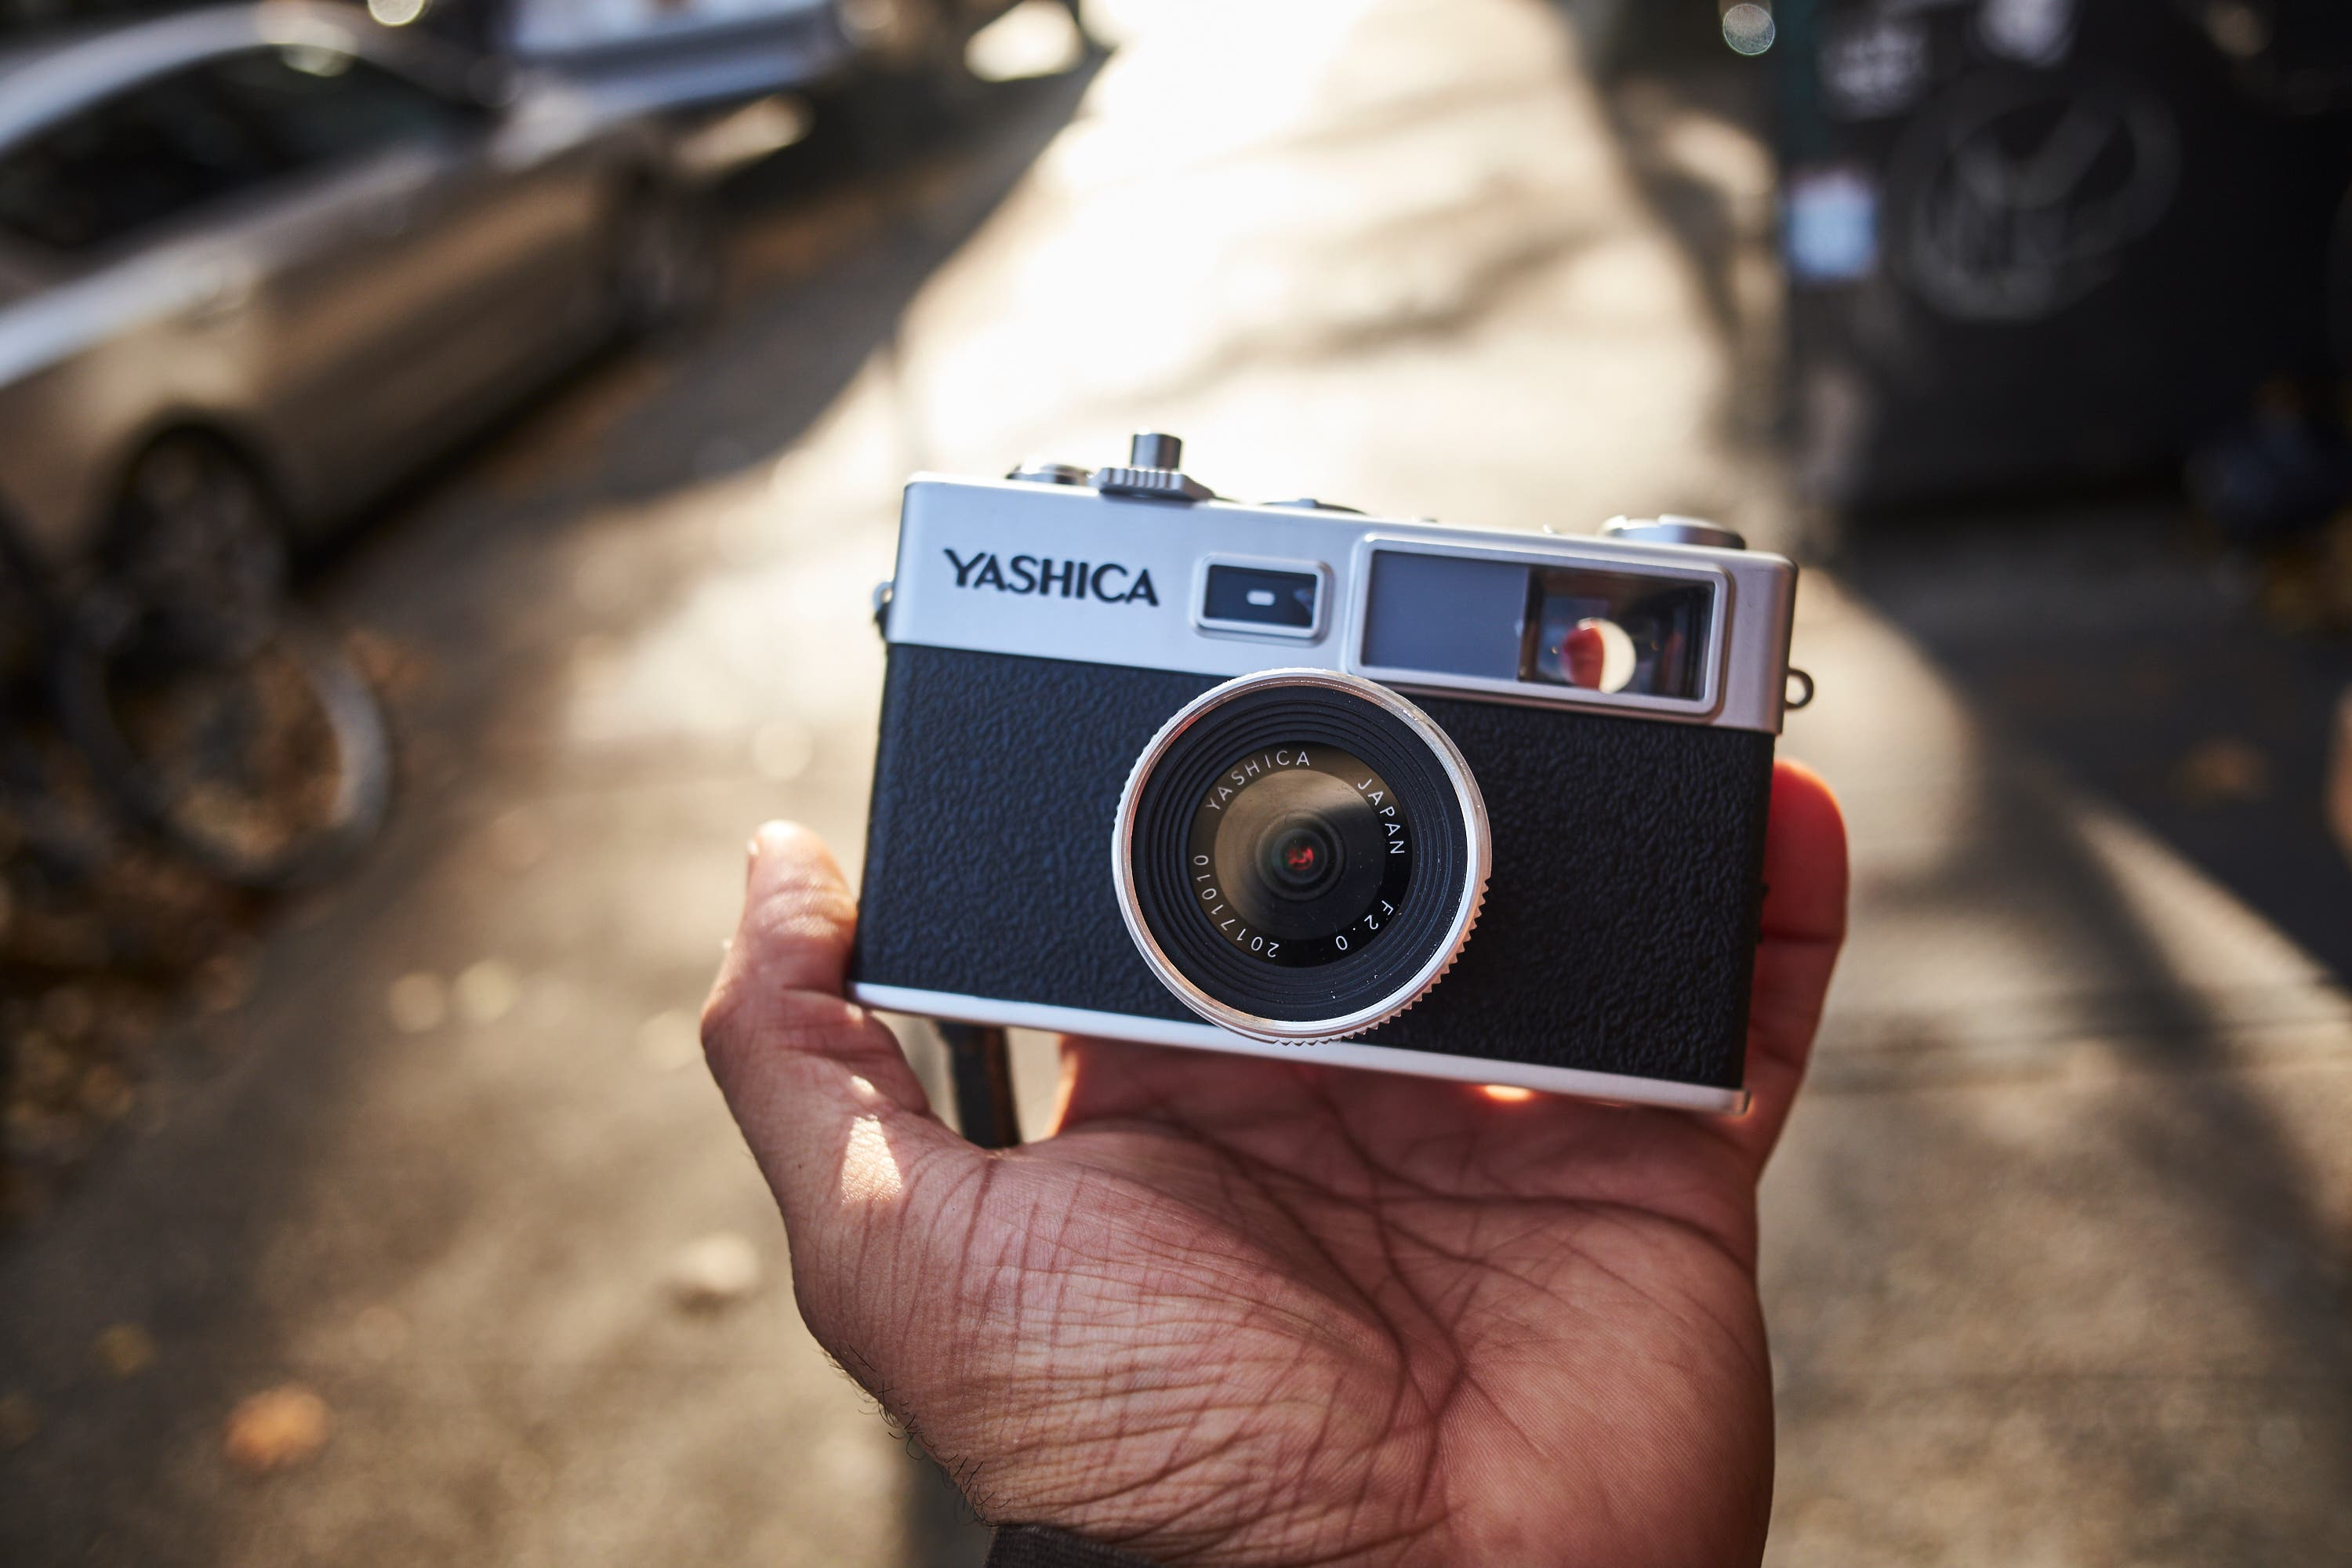 Review: Yashica Y35 (The Camera for a Digital Photographer to Step Up to Film With)